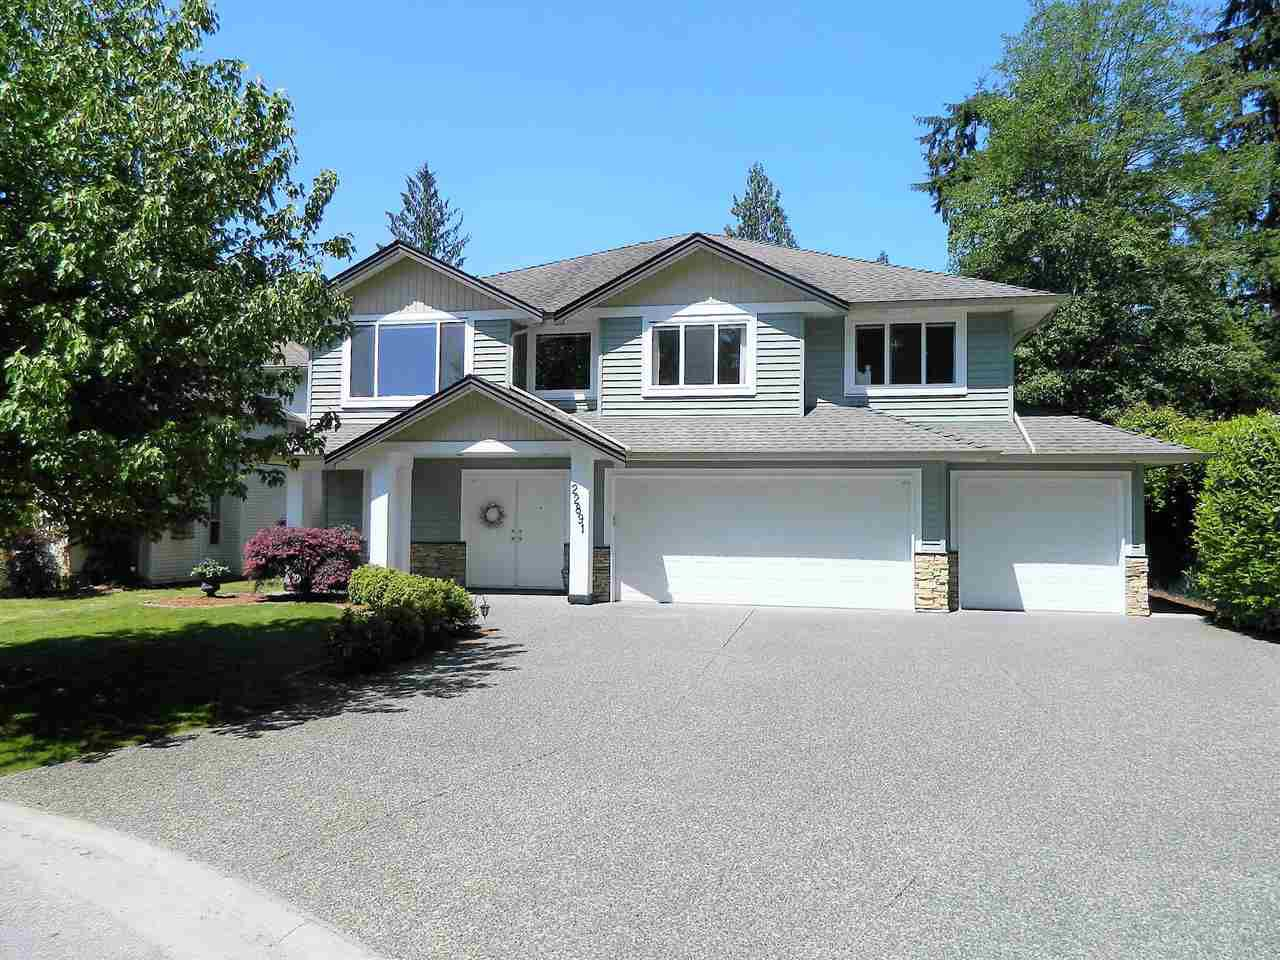 Main Photo: 22891 127TH Avenue in Maple Ridge: East Central House for sale : MLS®# R2170101